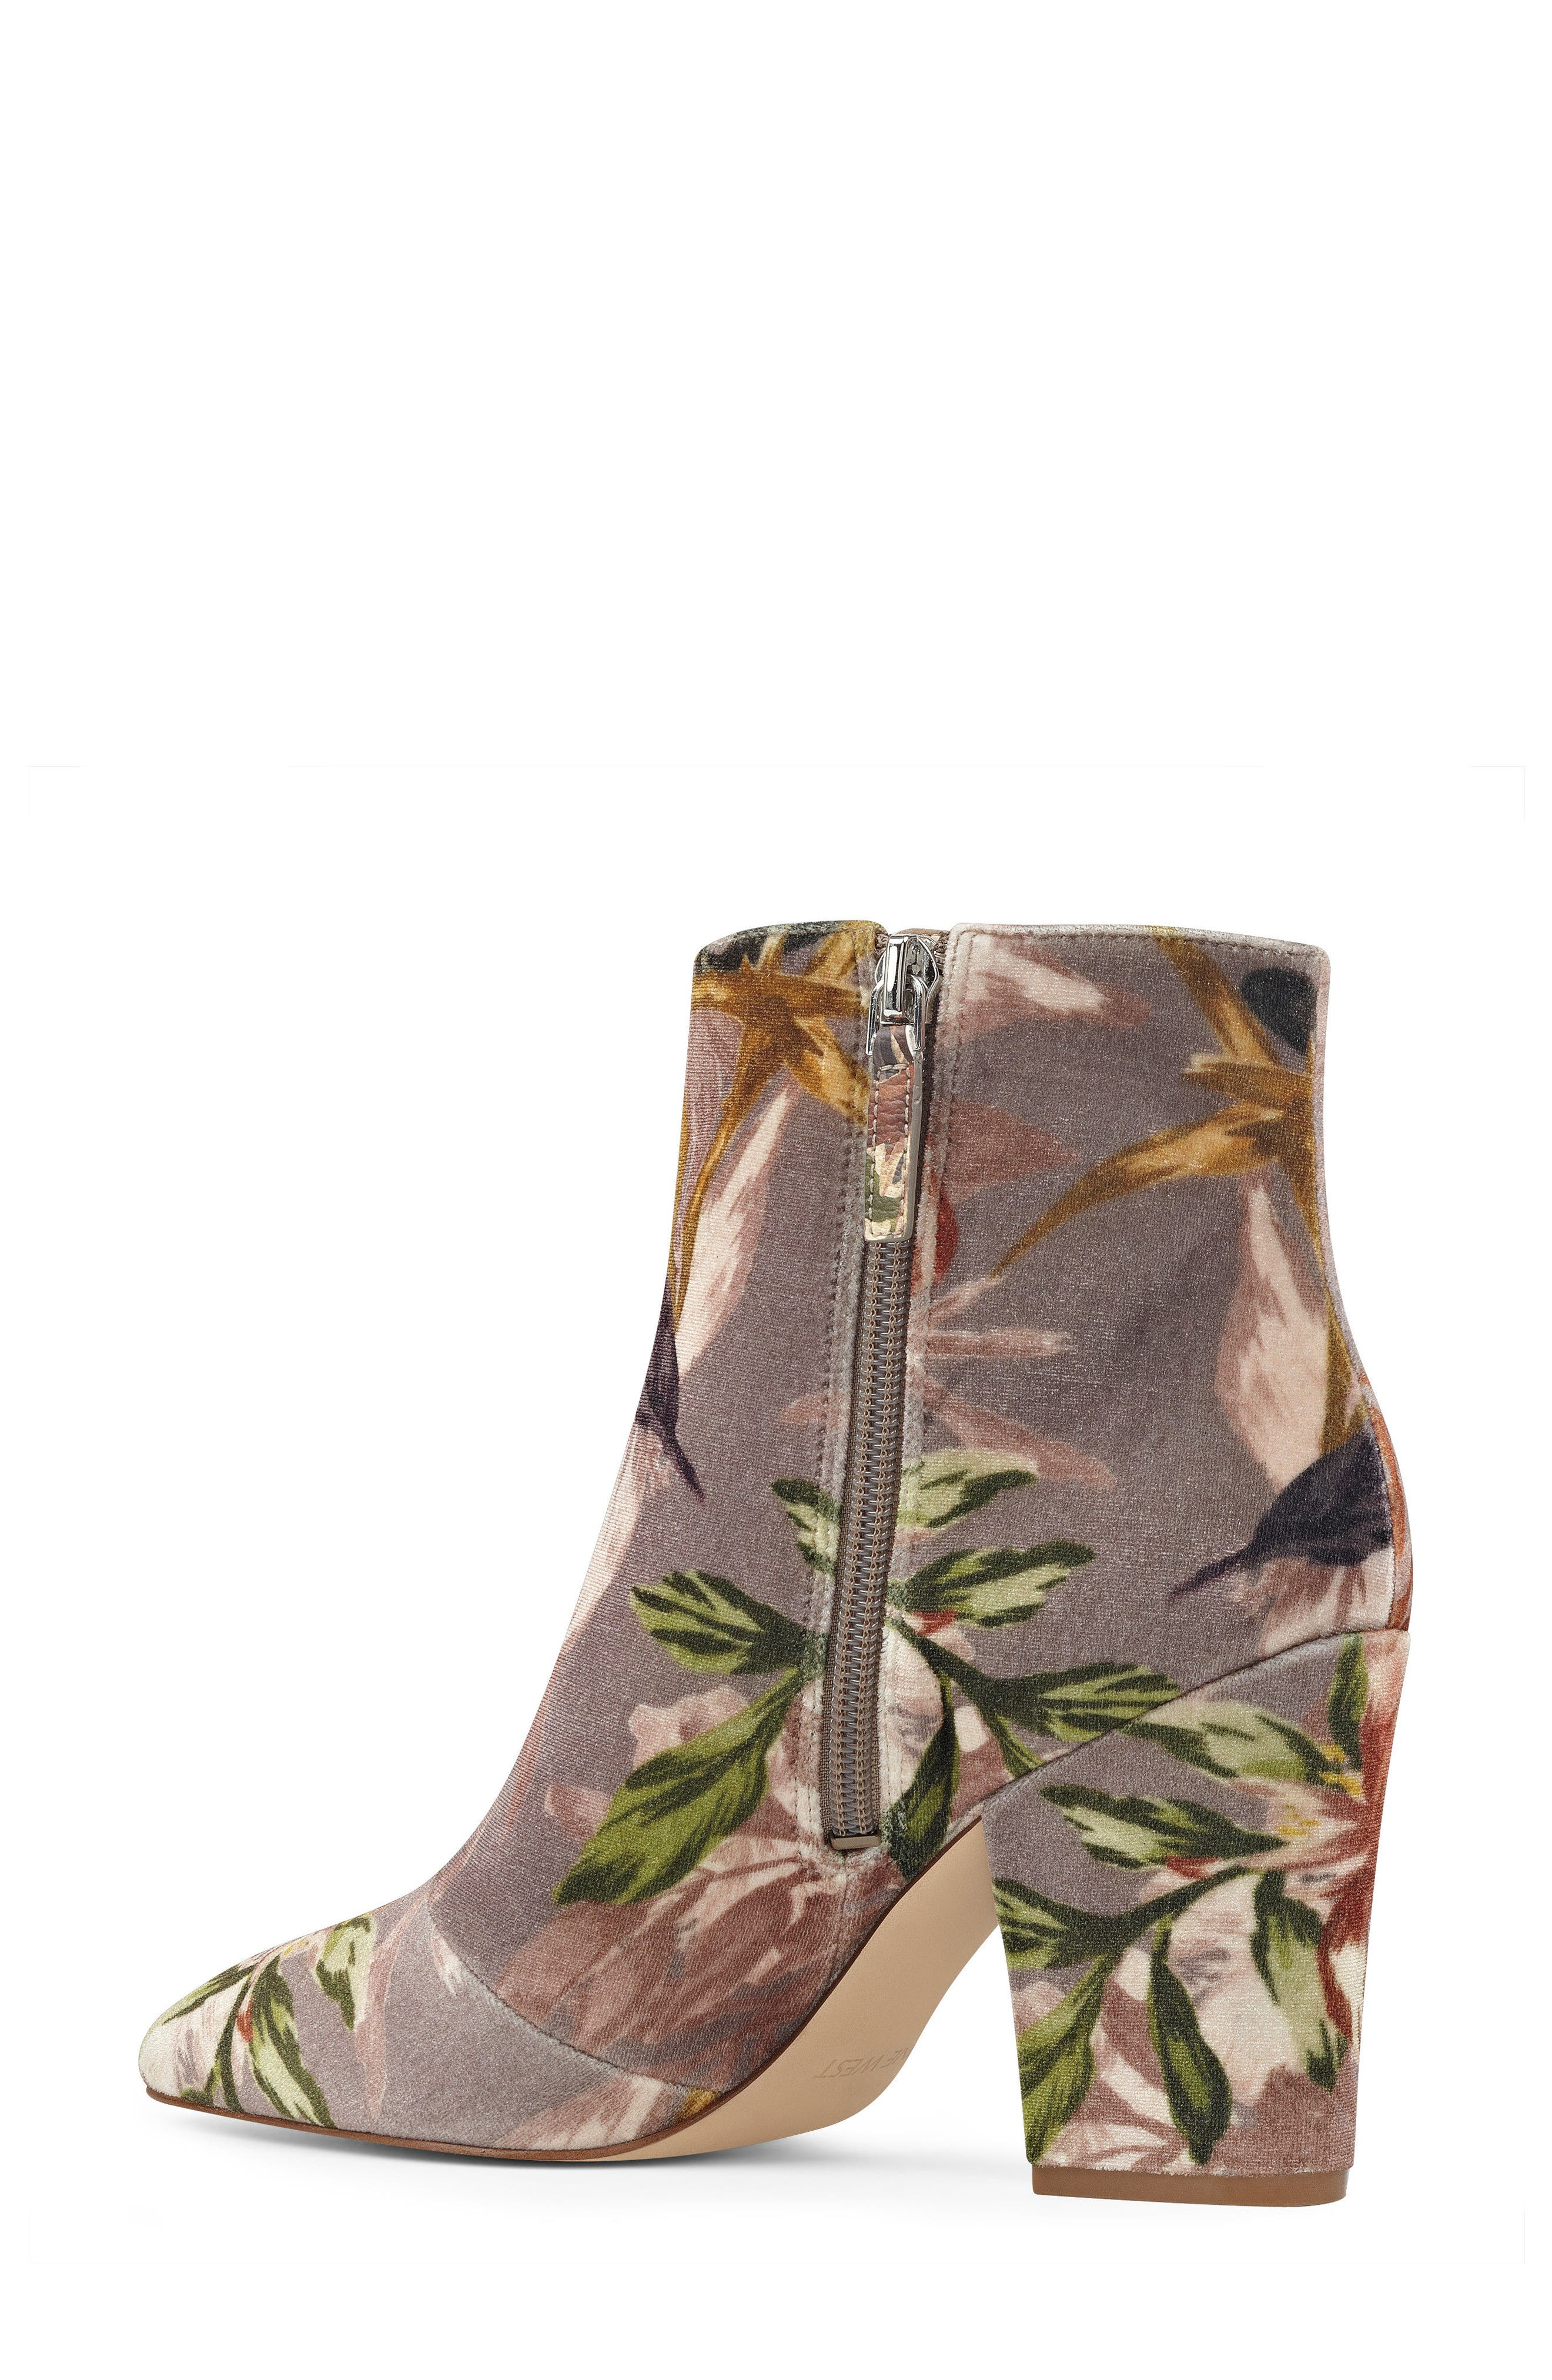 Savitra Pointy Toe Bootie,                             Alternate thumbnail 2, color,                             Taupe Multi Fabric